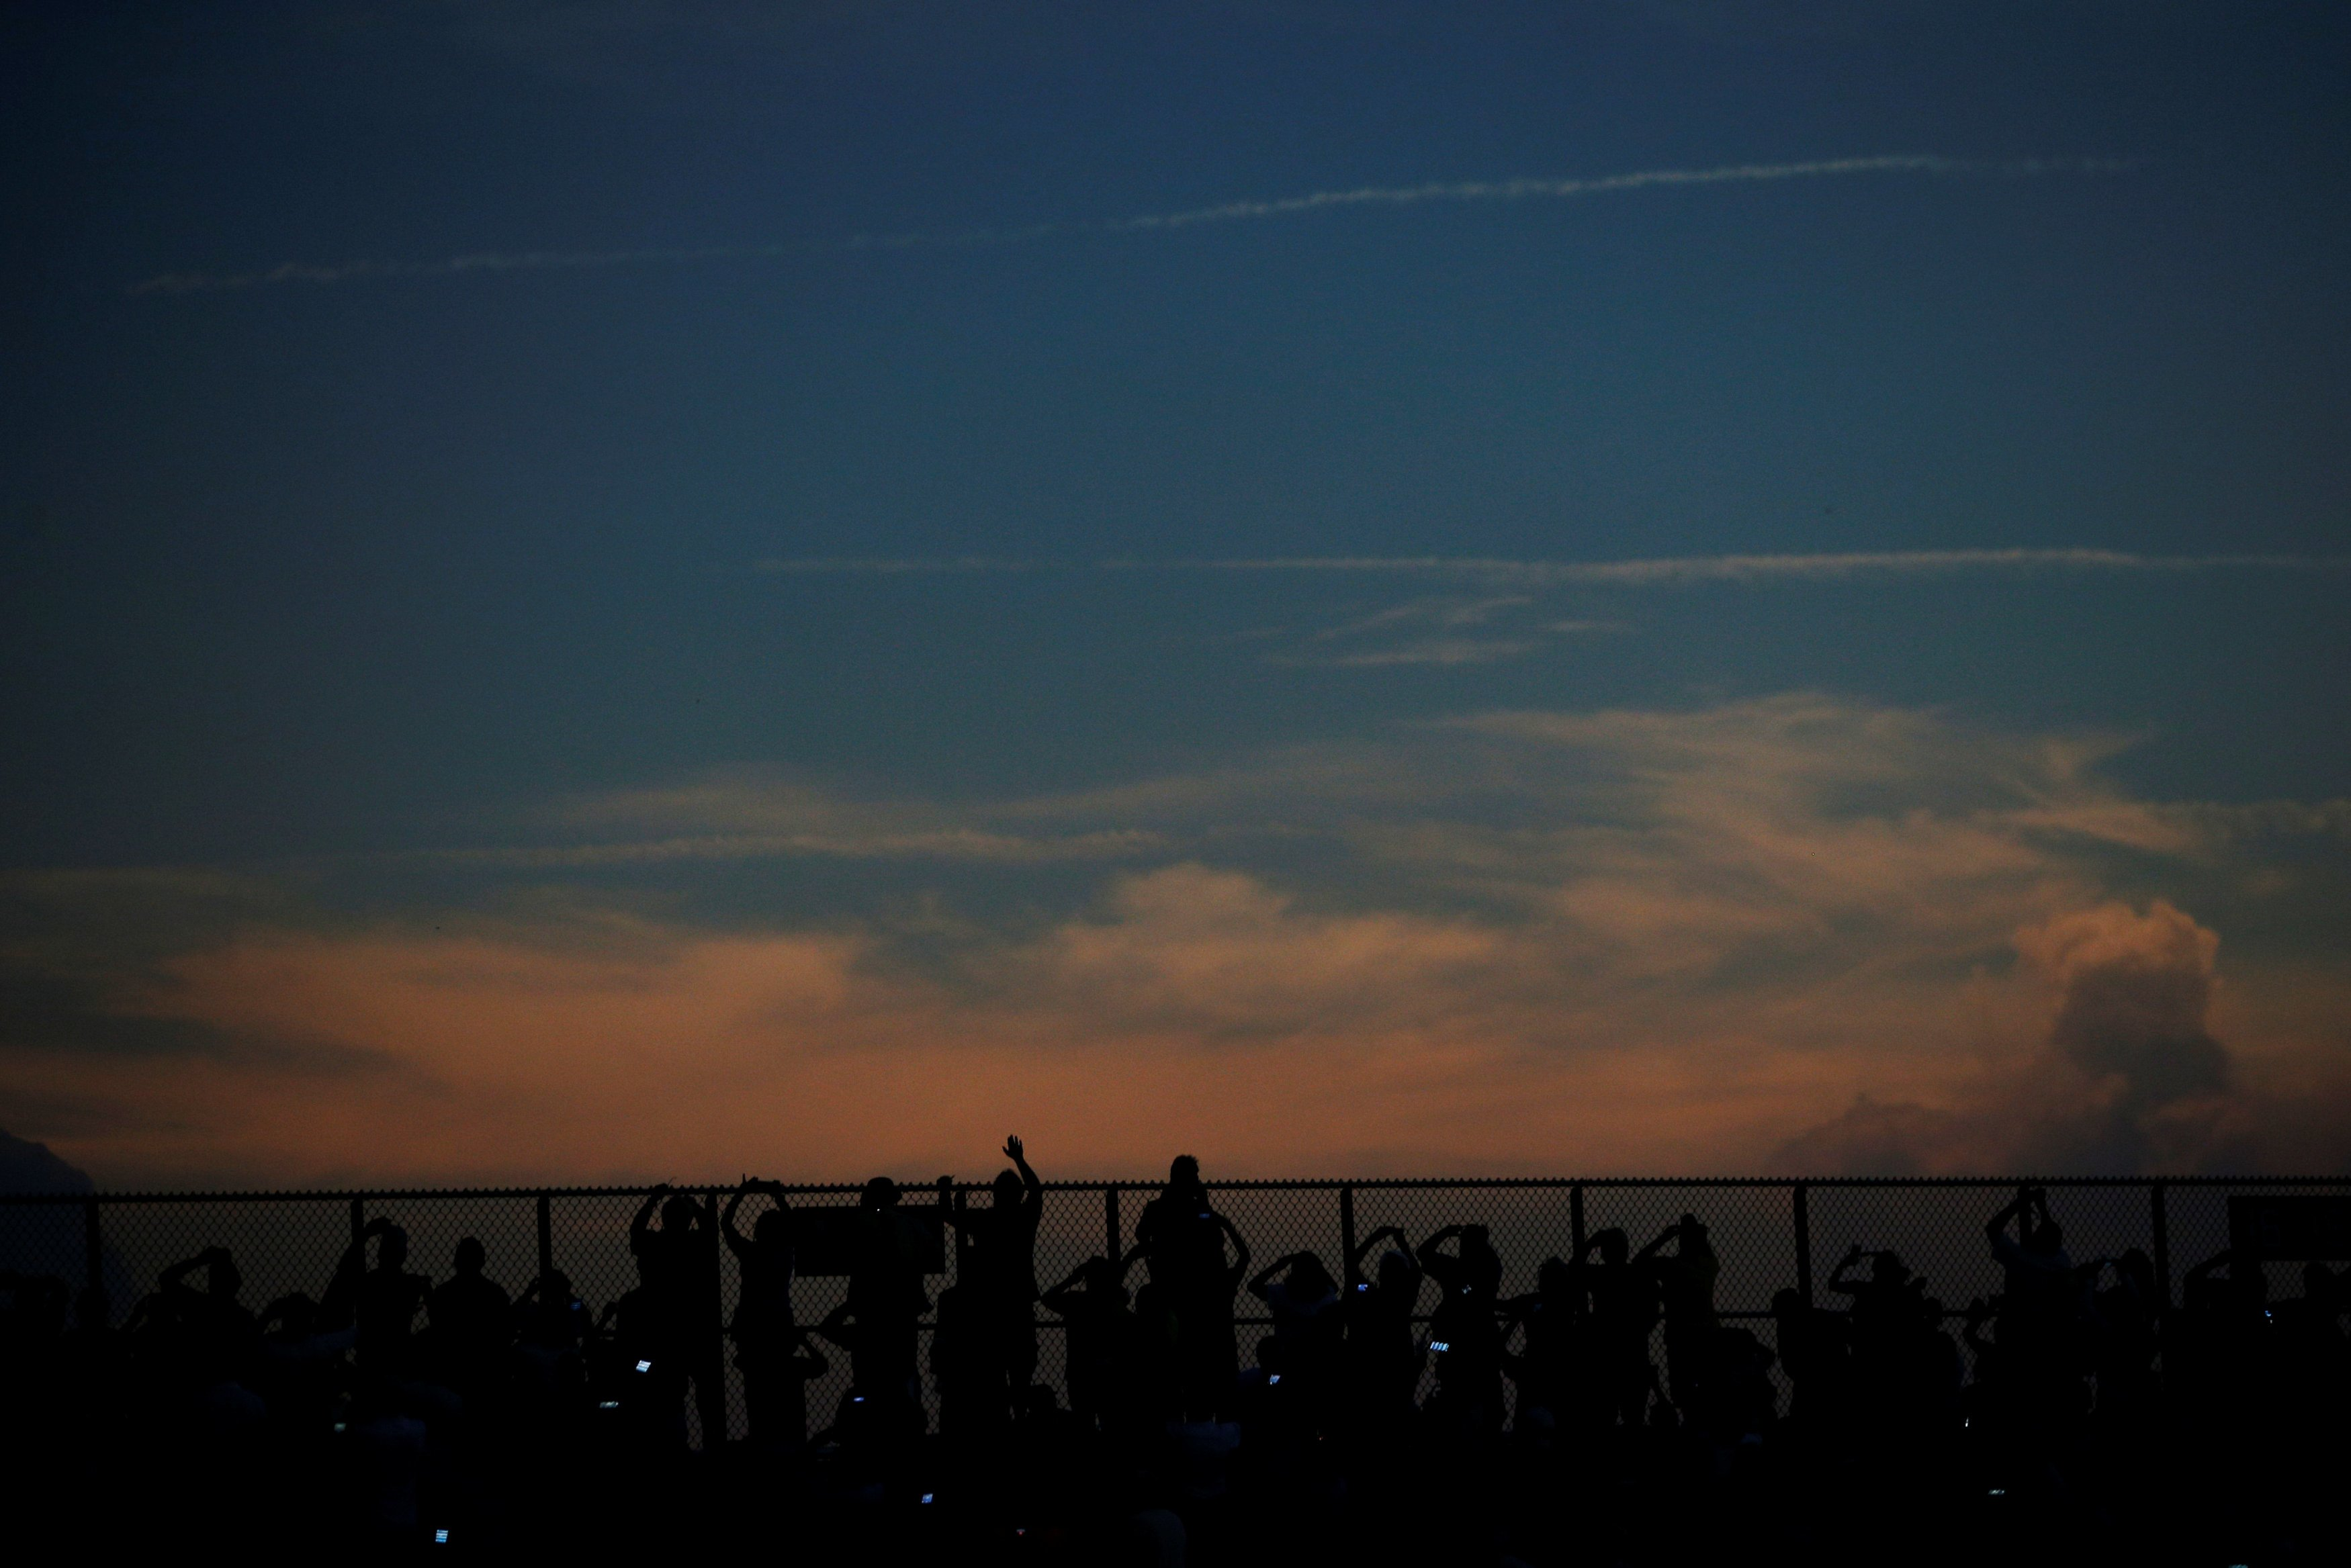 Spectators react to the total eclipse in the football stadium at Southern Illinois University in Carbondale